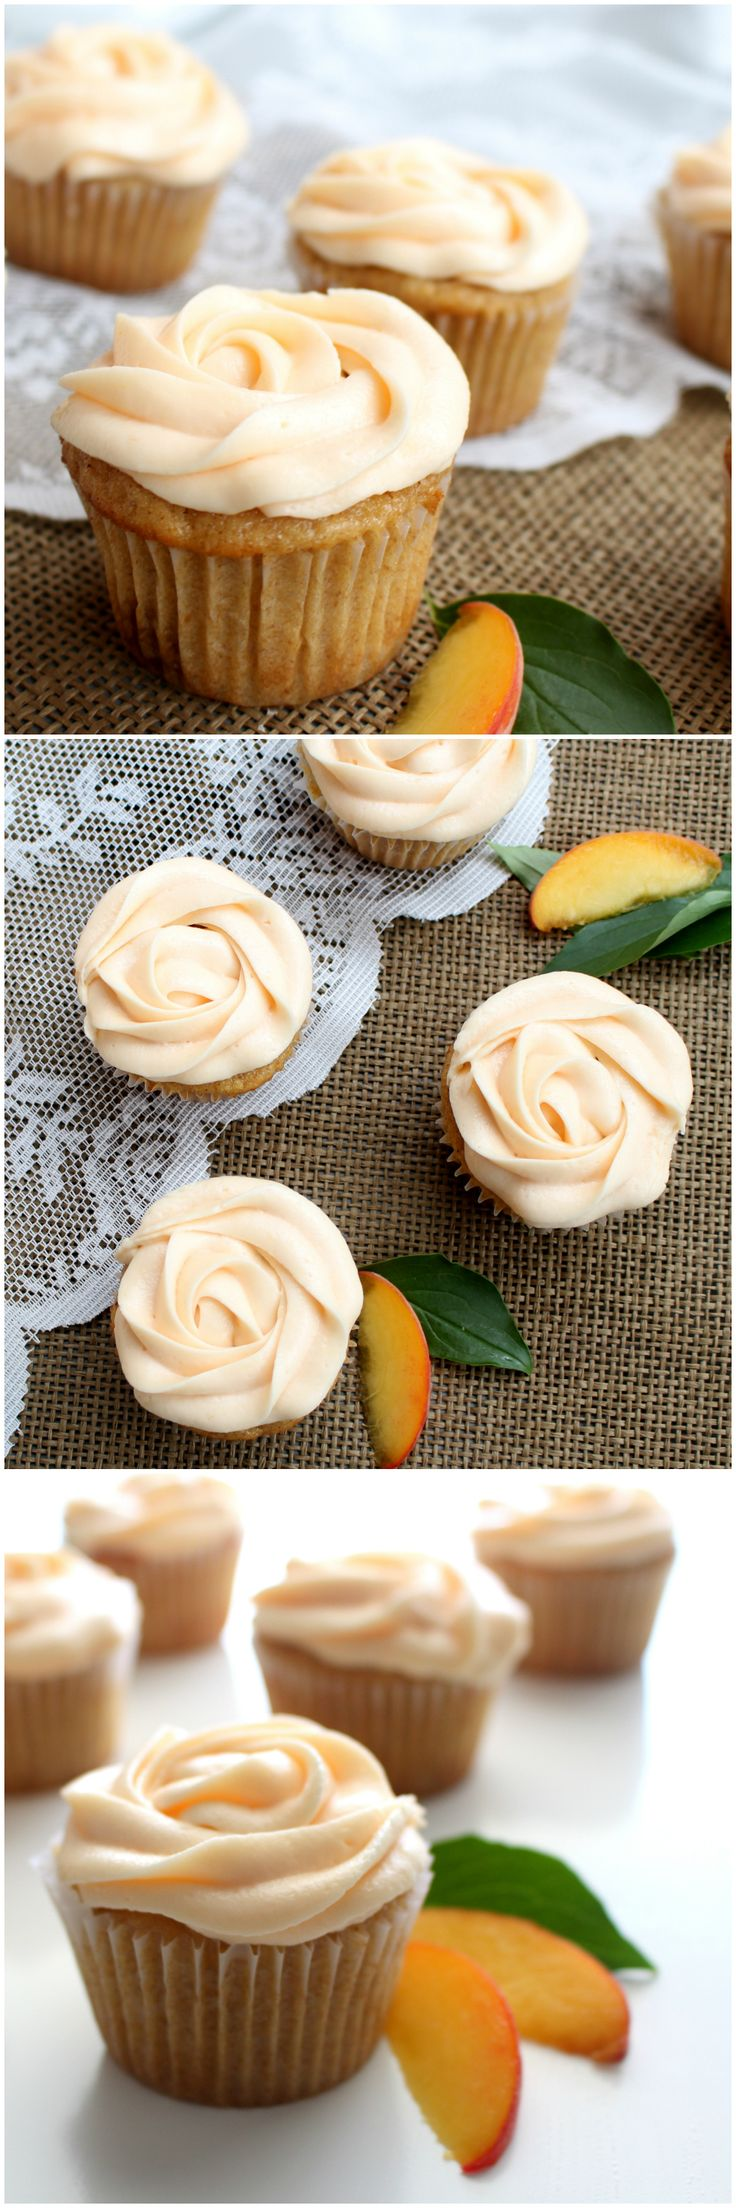 Brown Butter Peach Cupcakes - Perfect for summertime celebrations! | www.chocolatewithgrace | #cupcakes #peach #recipe